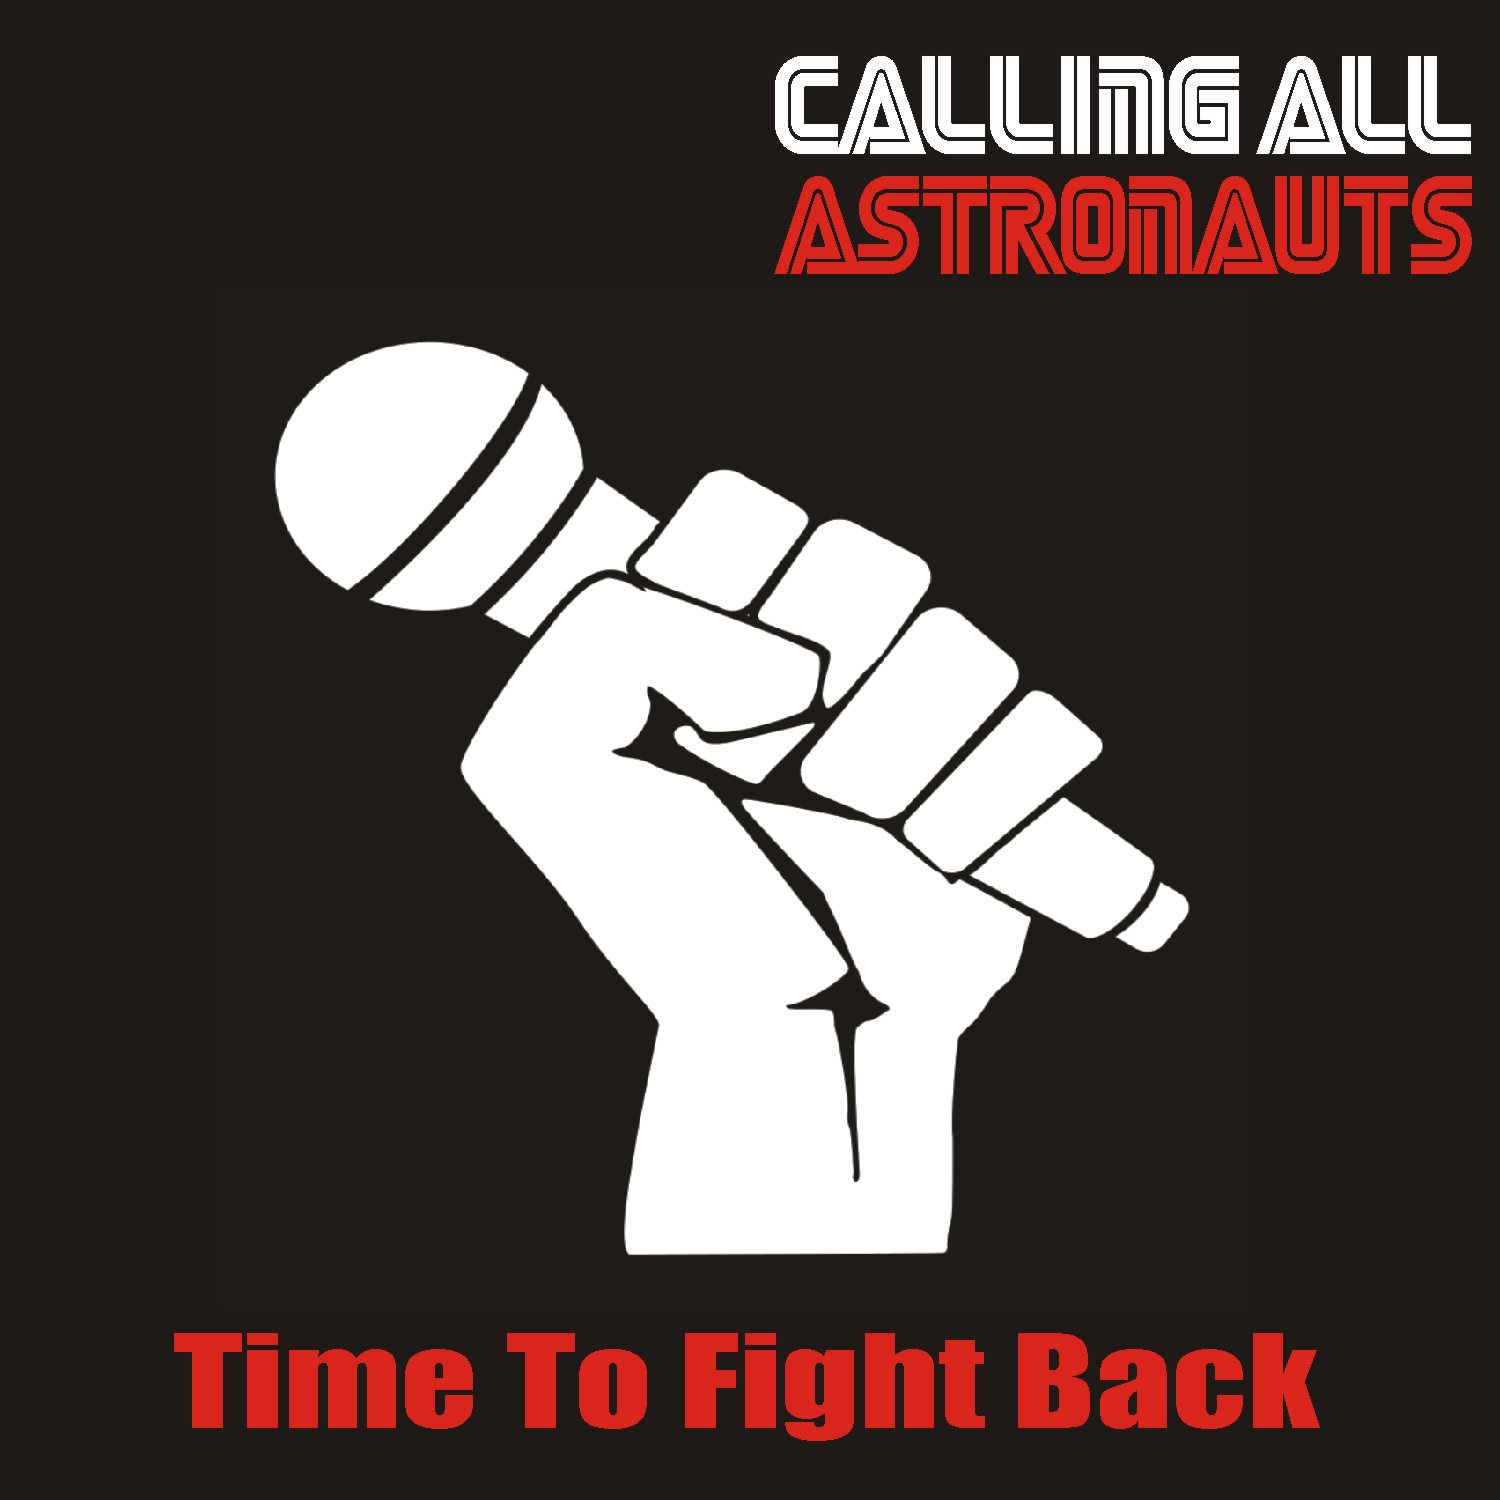 Calling All Astronauts - Time To Fight Back